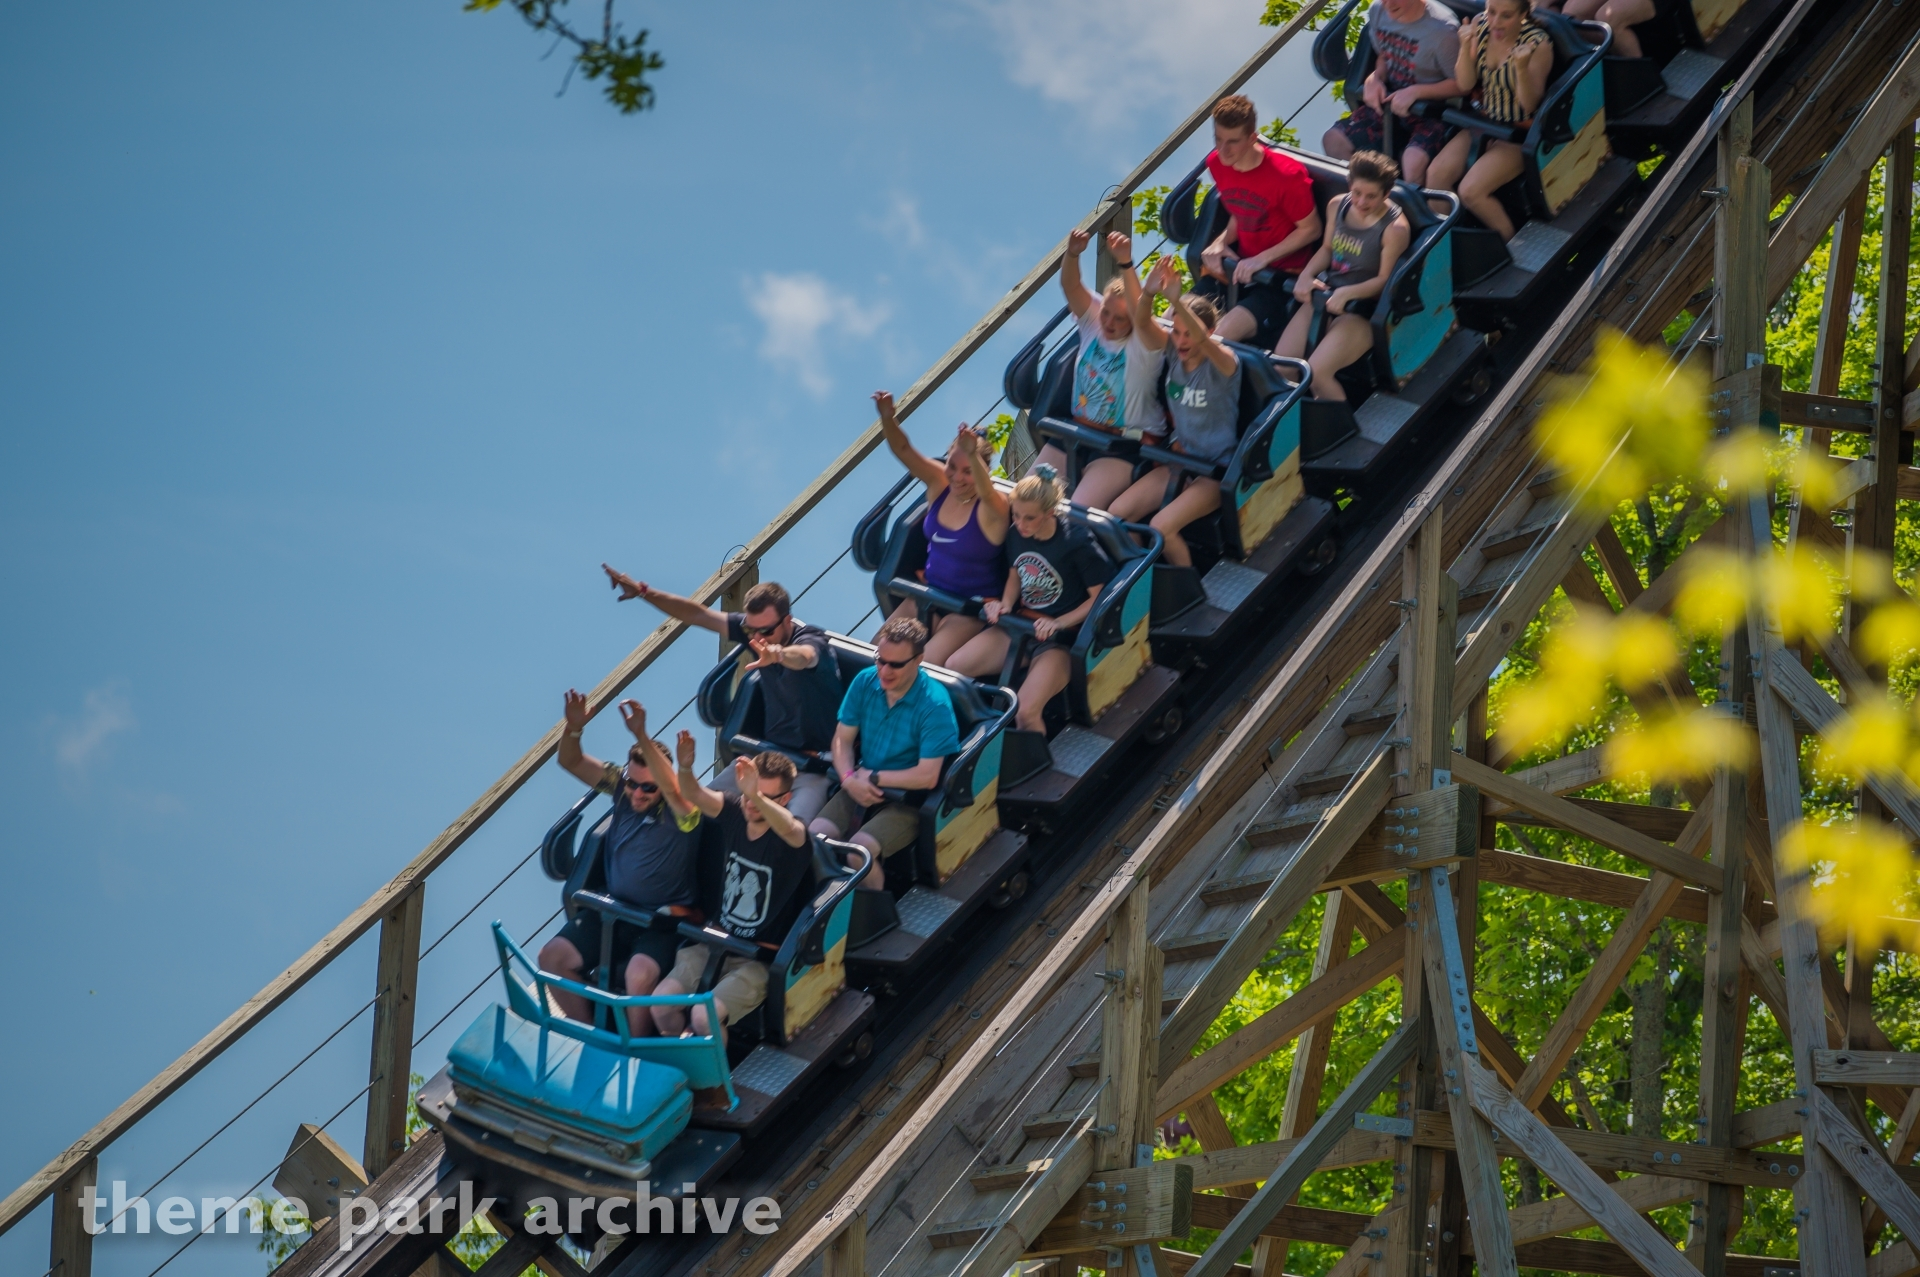 Our fifth Coasterstock | Theme Park Archive